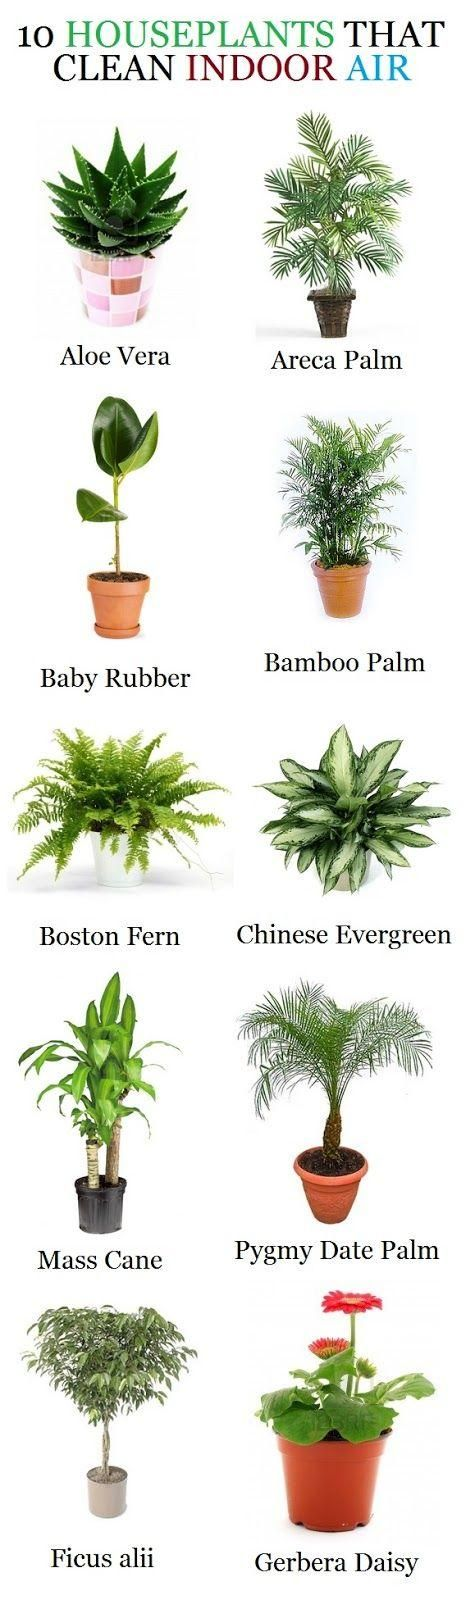 10 houseplants that clean air.